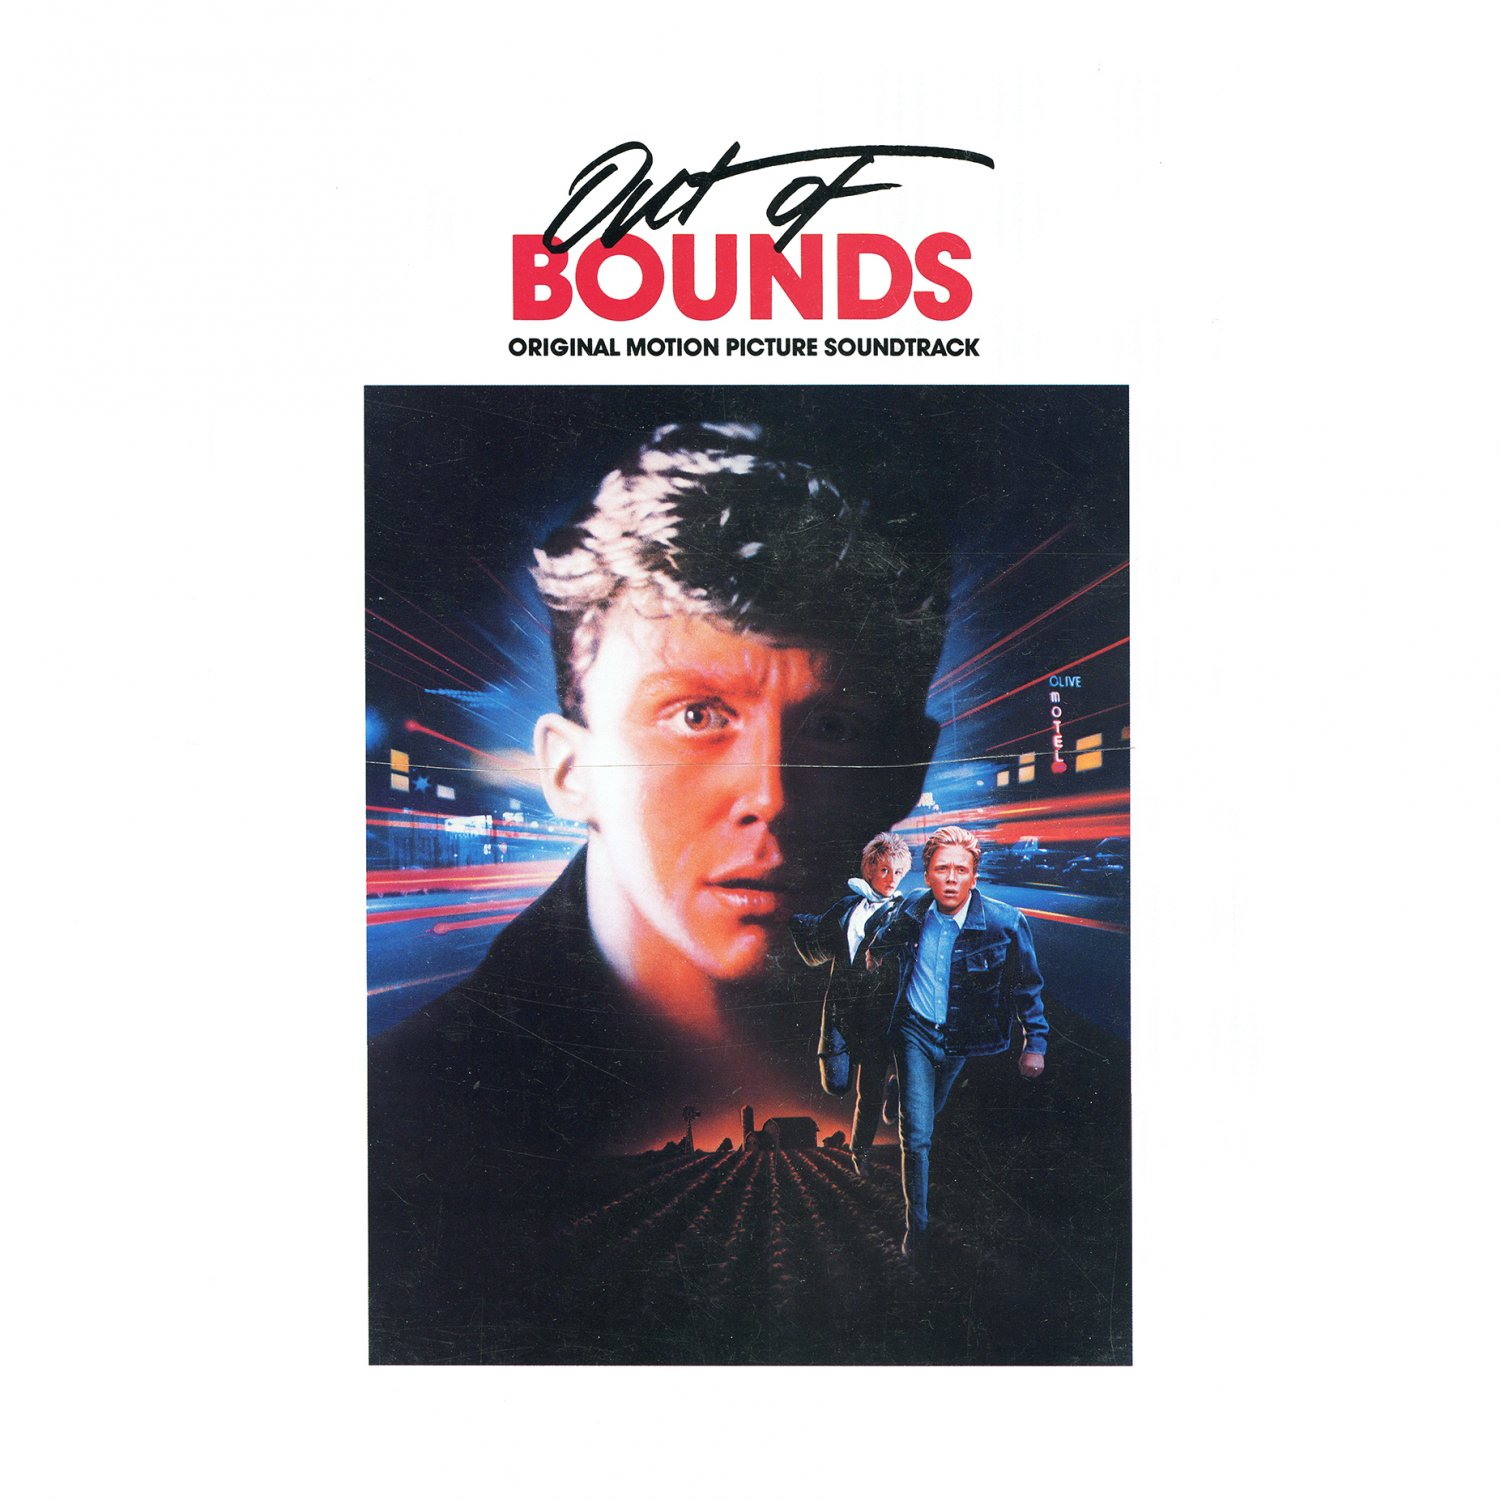 Out Of Bounds - Original Soundtrack, Stewart Copeland OST LP/CD